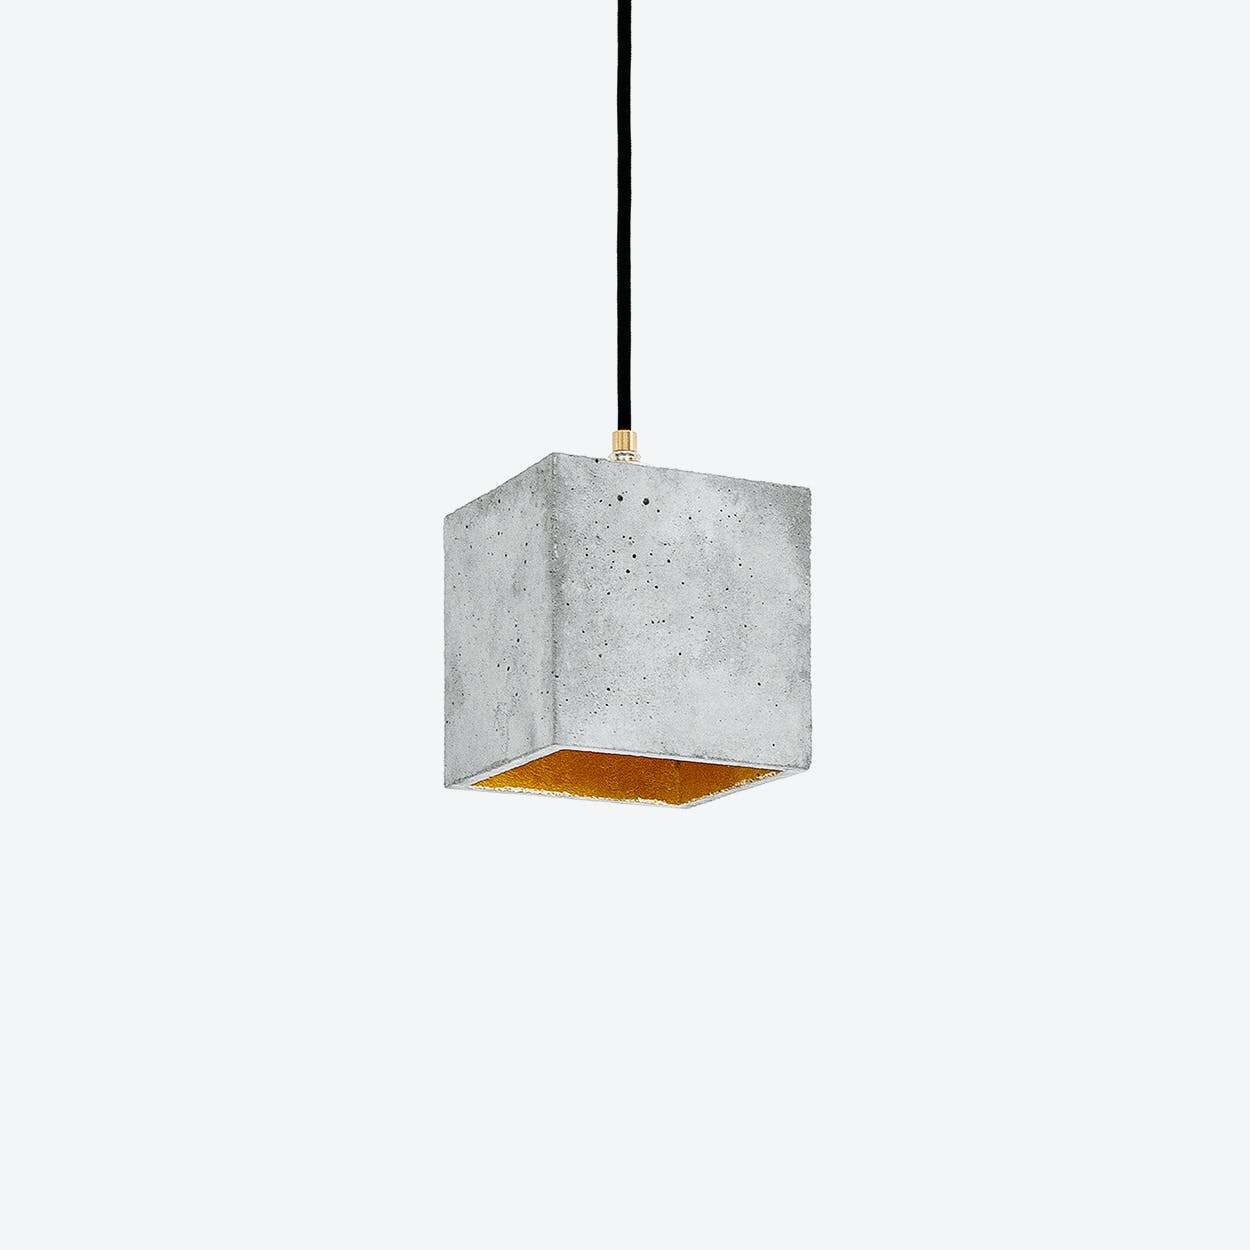 Concrete Pendant Light Cubic B1 in Light Grey and Gold